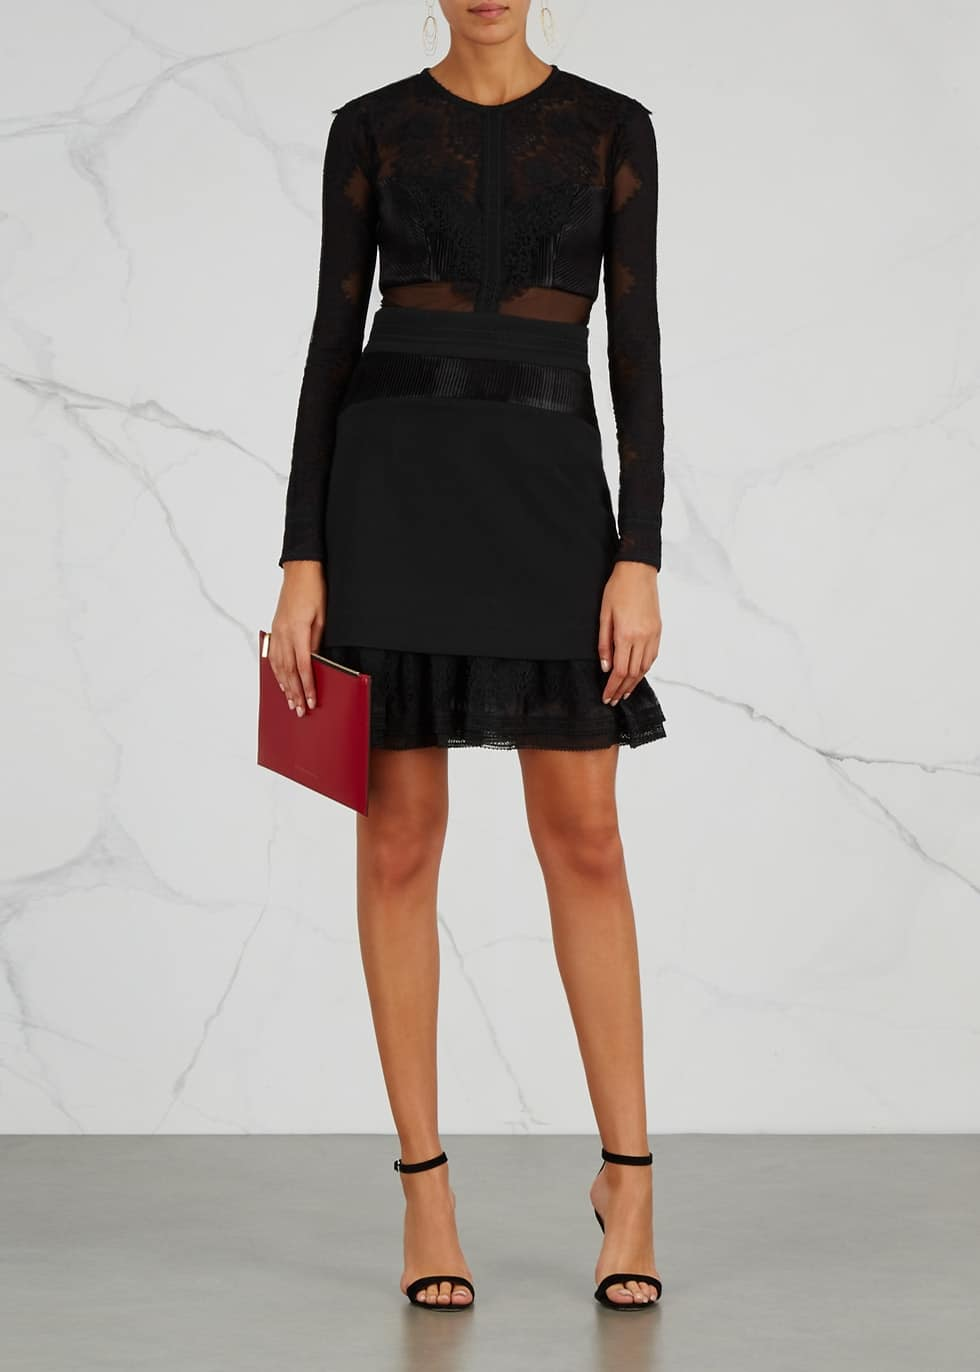 THREE FLOOR Bonjour Panelled Mini Black Dress